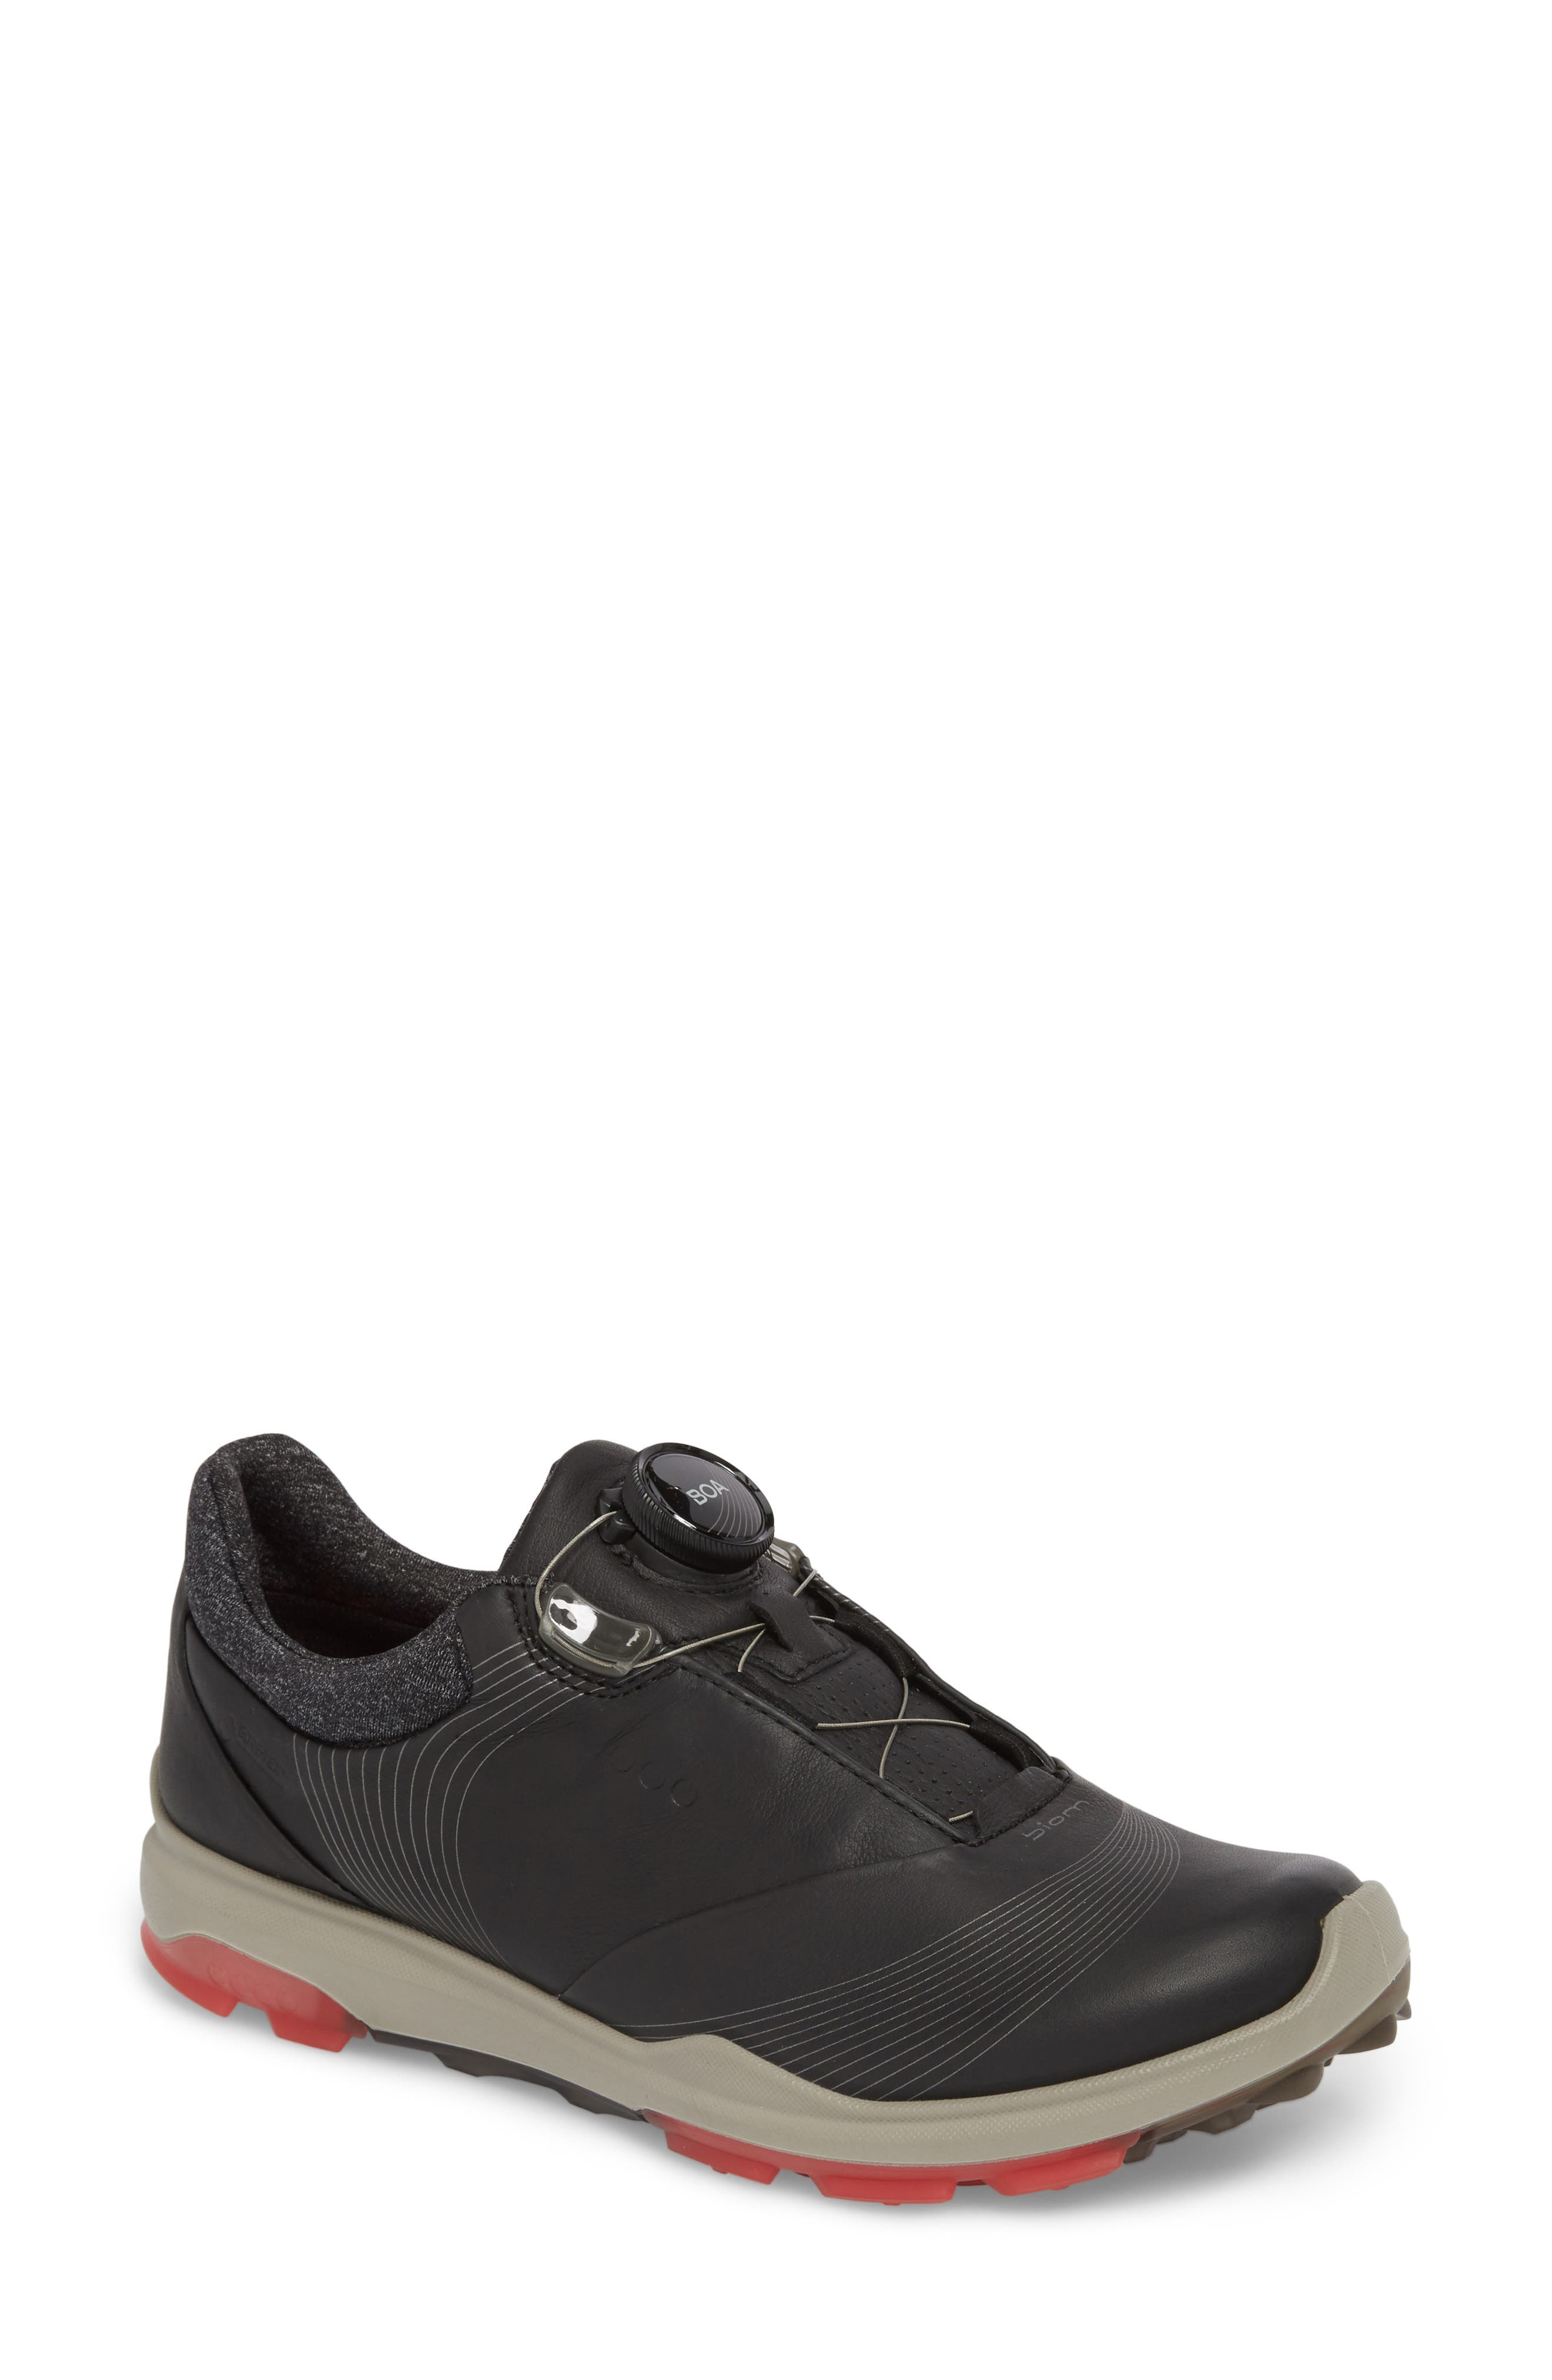 BIOM 2 Hybrid Gore-Tex<sup>®</sup> Golf Shoe,                         Main,                         color, BLACK LEATHER